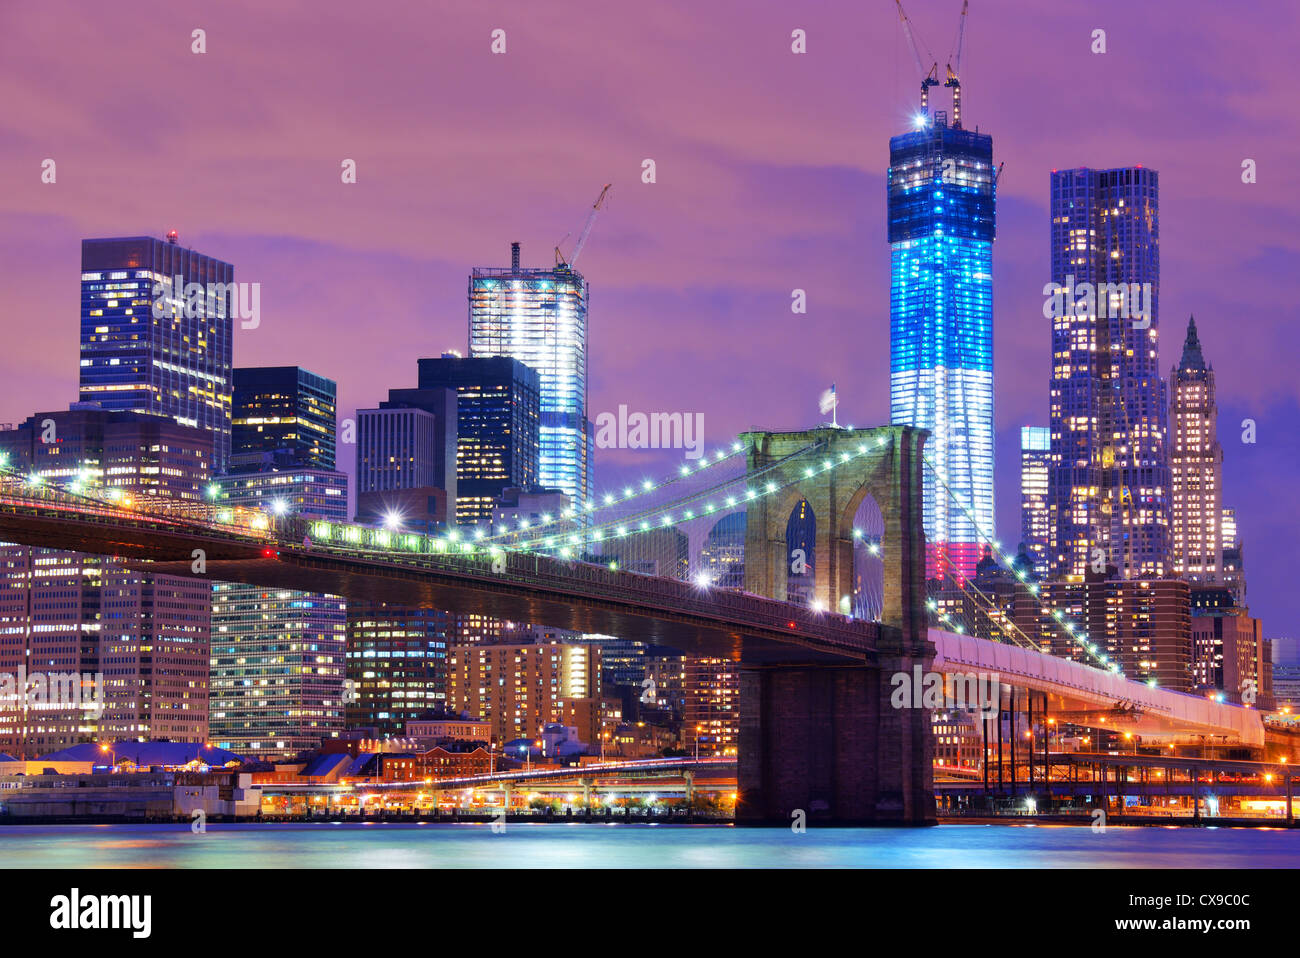 Brooklyn Bridge in New York City. - Stock Image